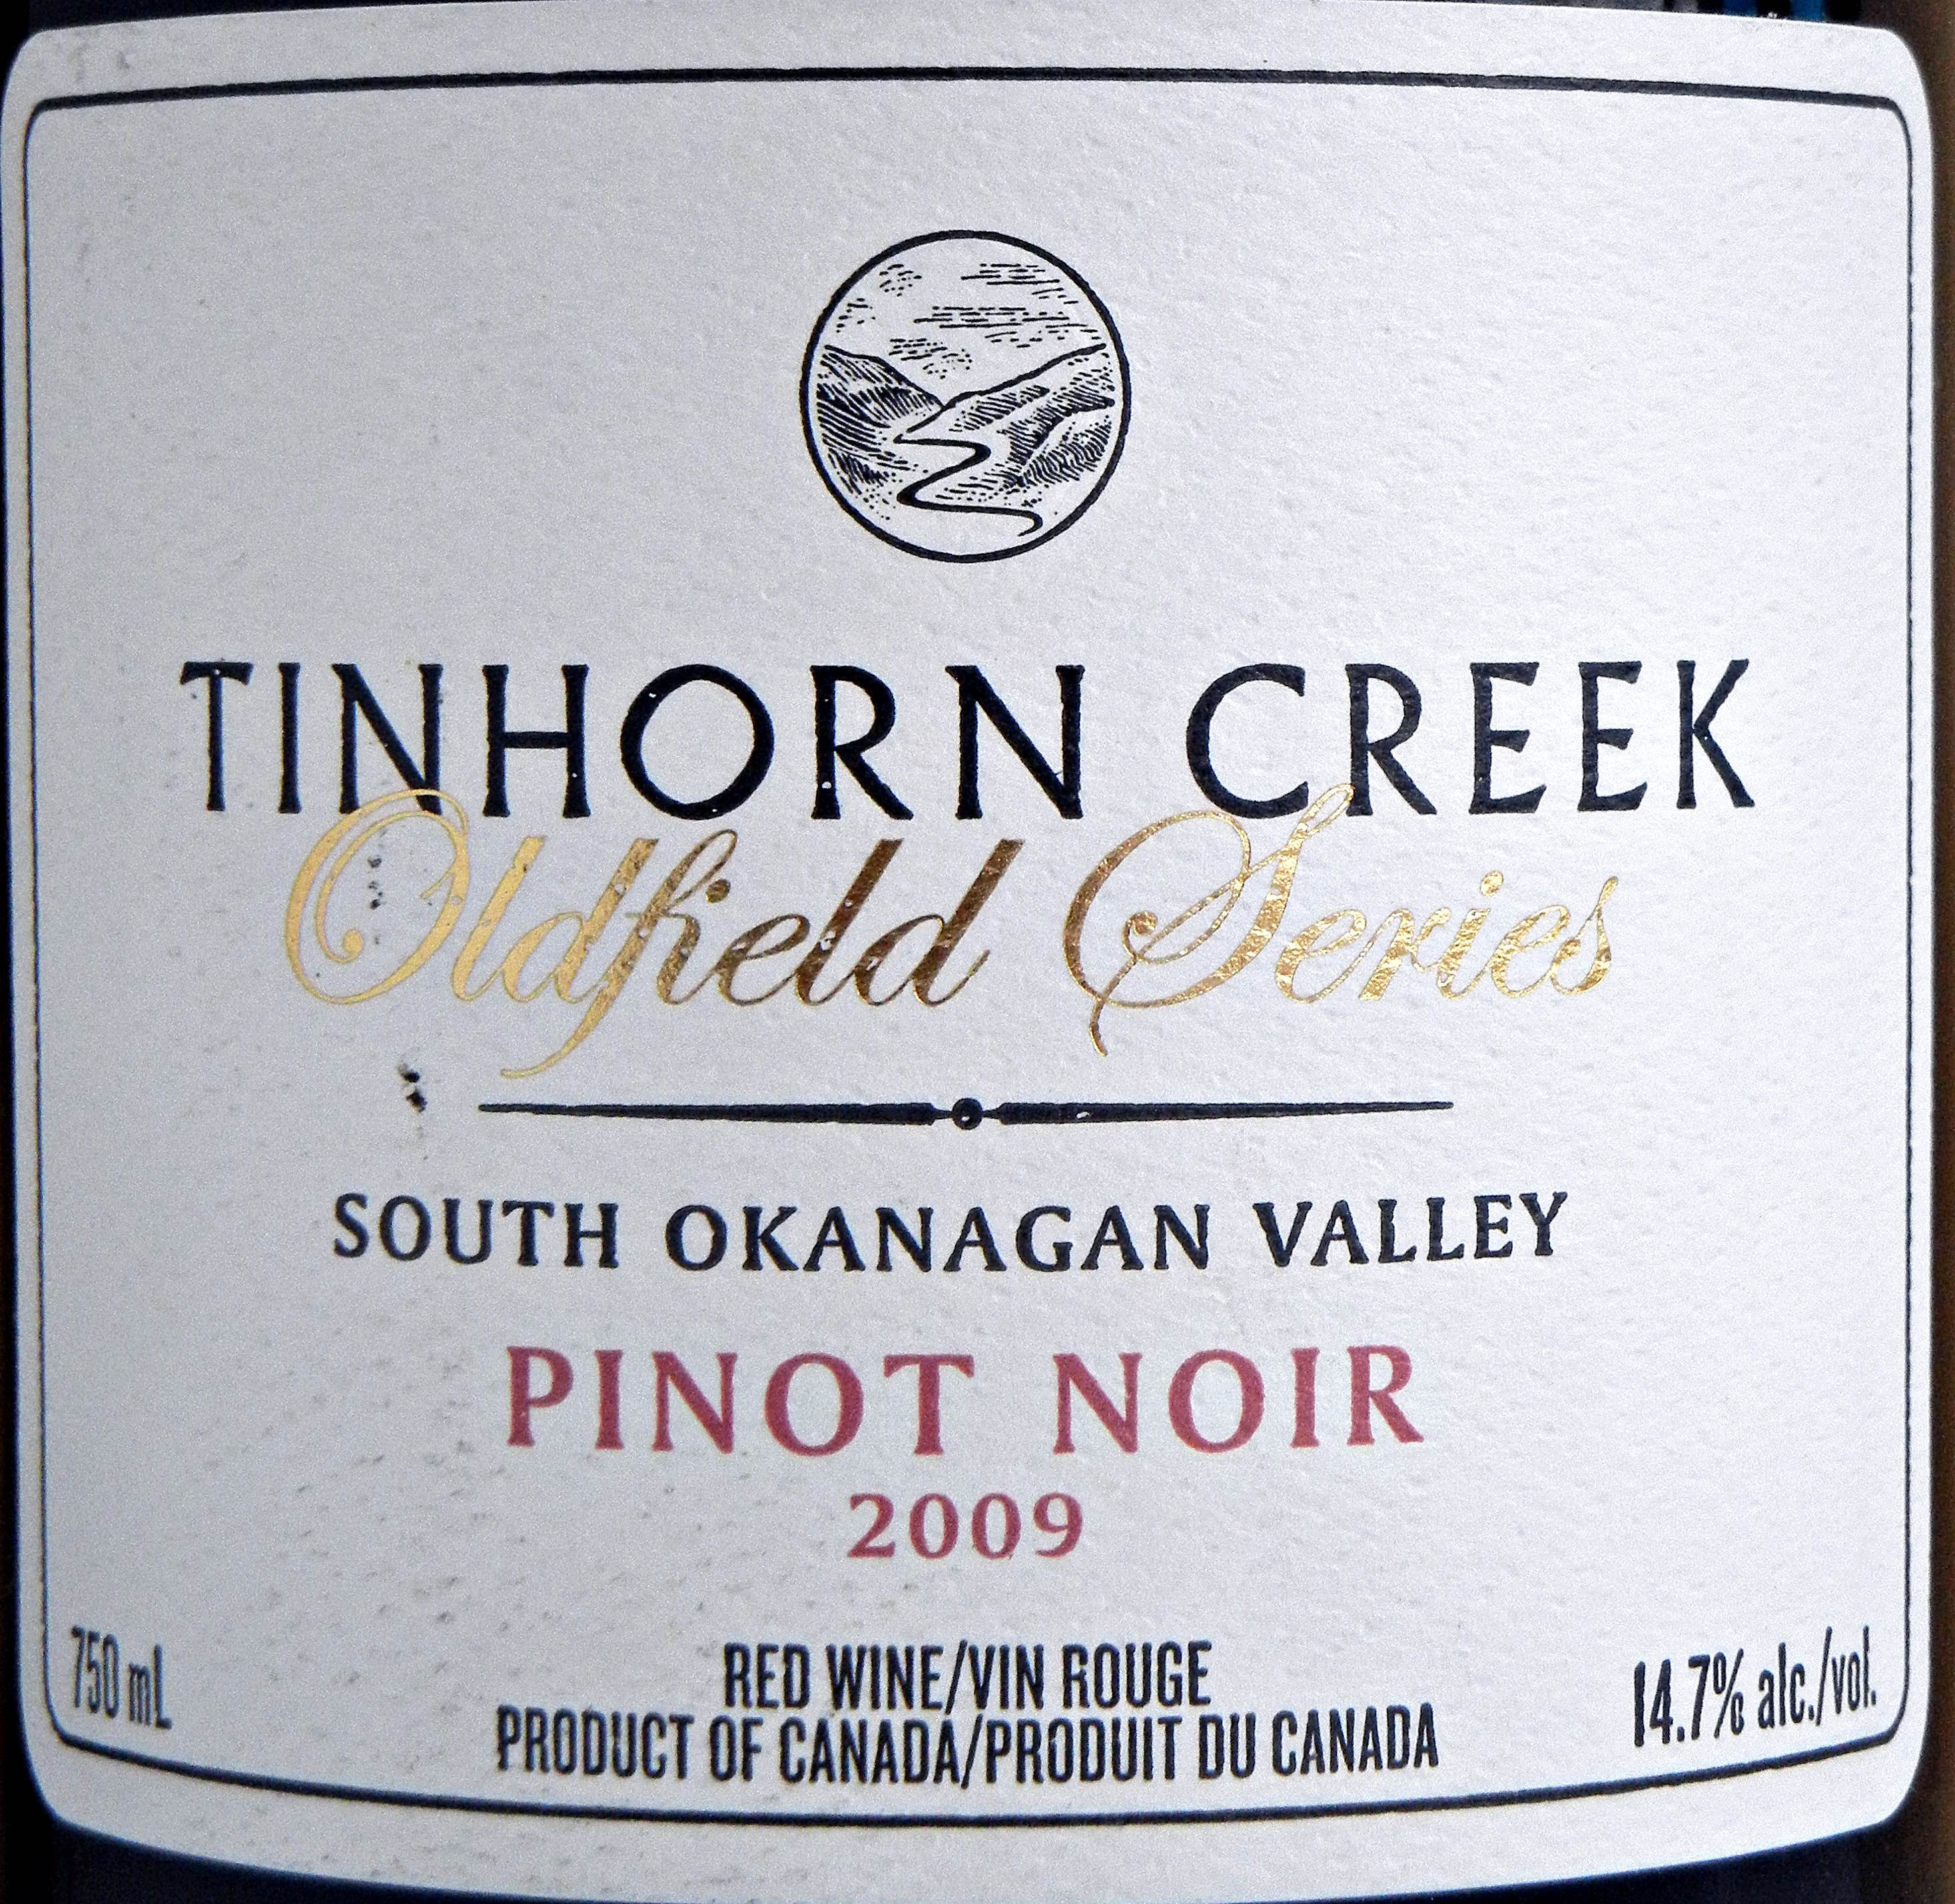 Tinhorn Creek Oldfield Series Pinot Noir 2009 Label - BC Pinot Noir Tasting Review 26